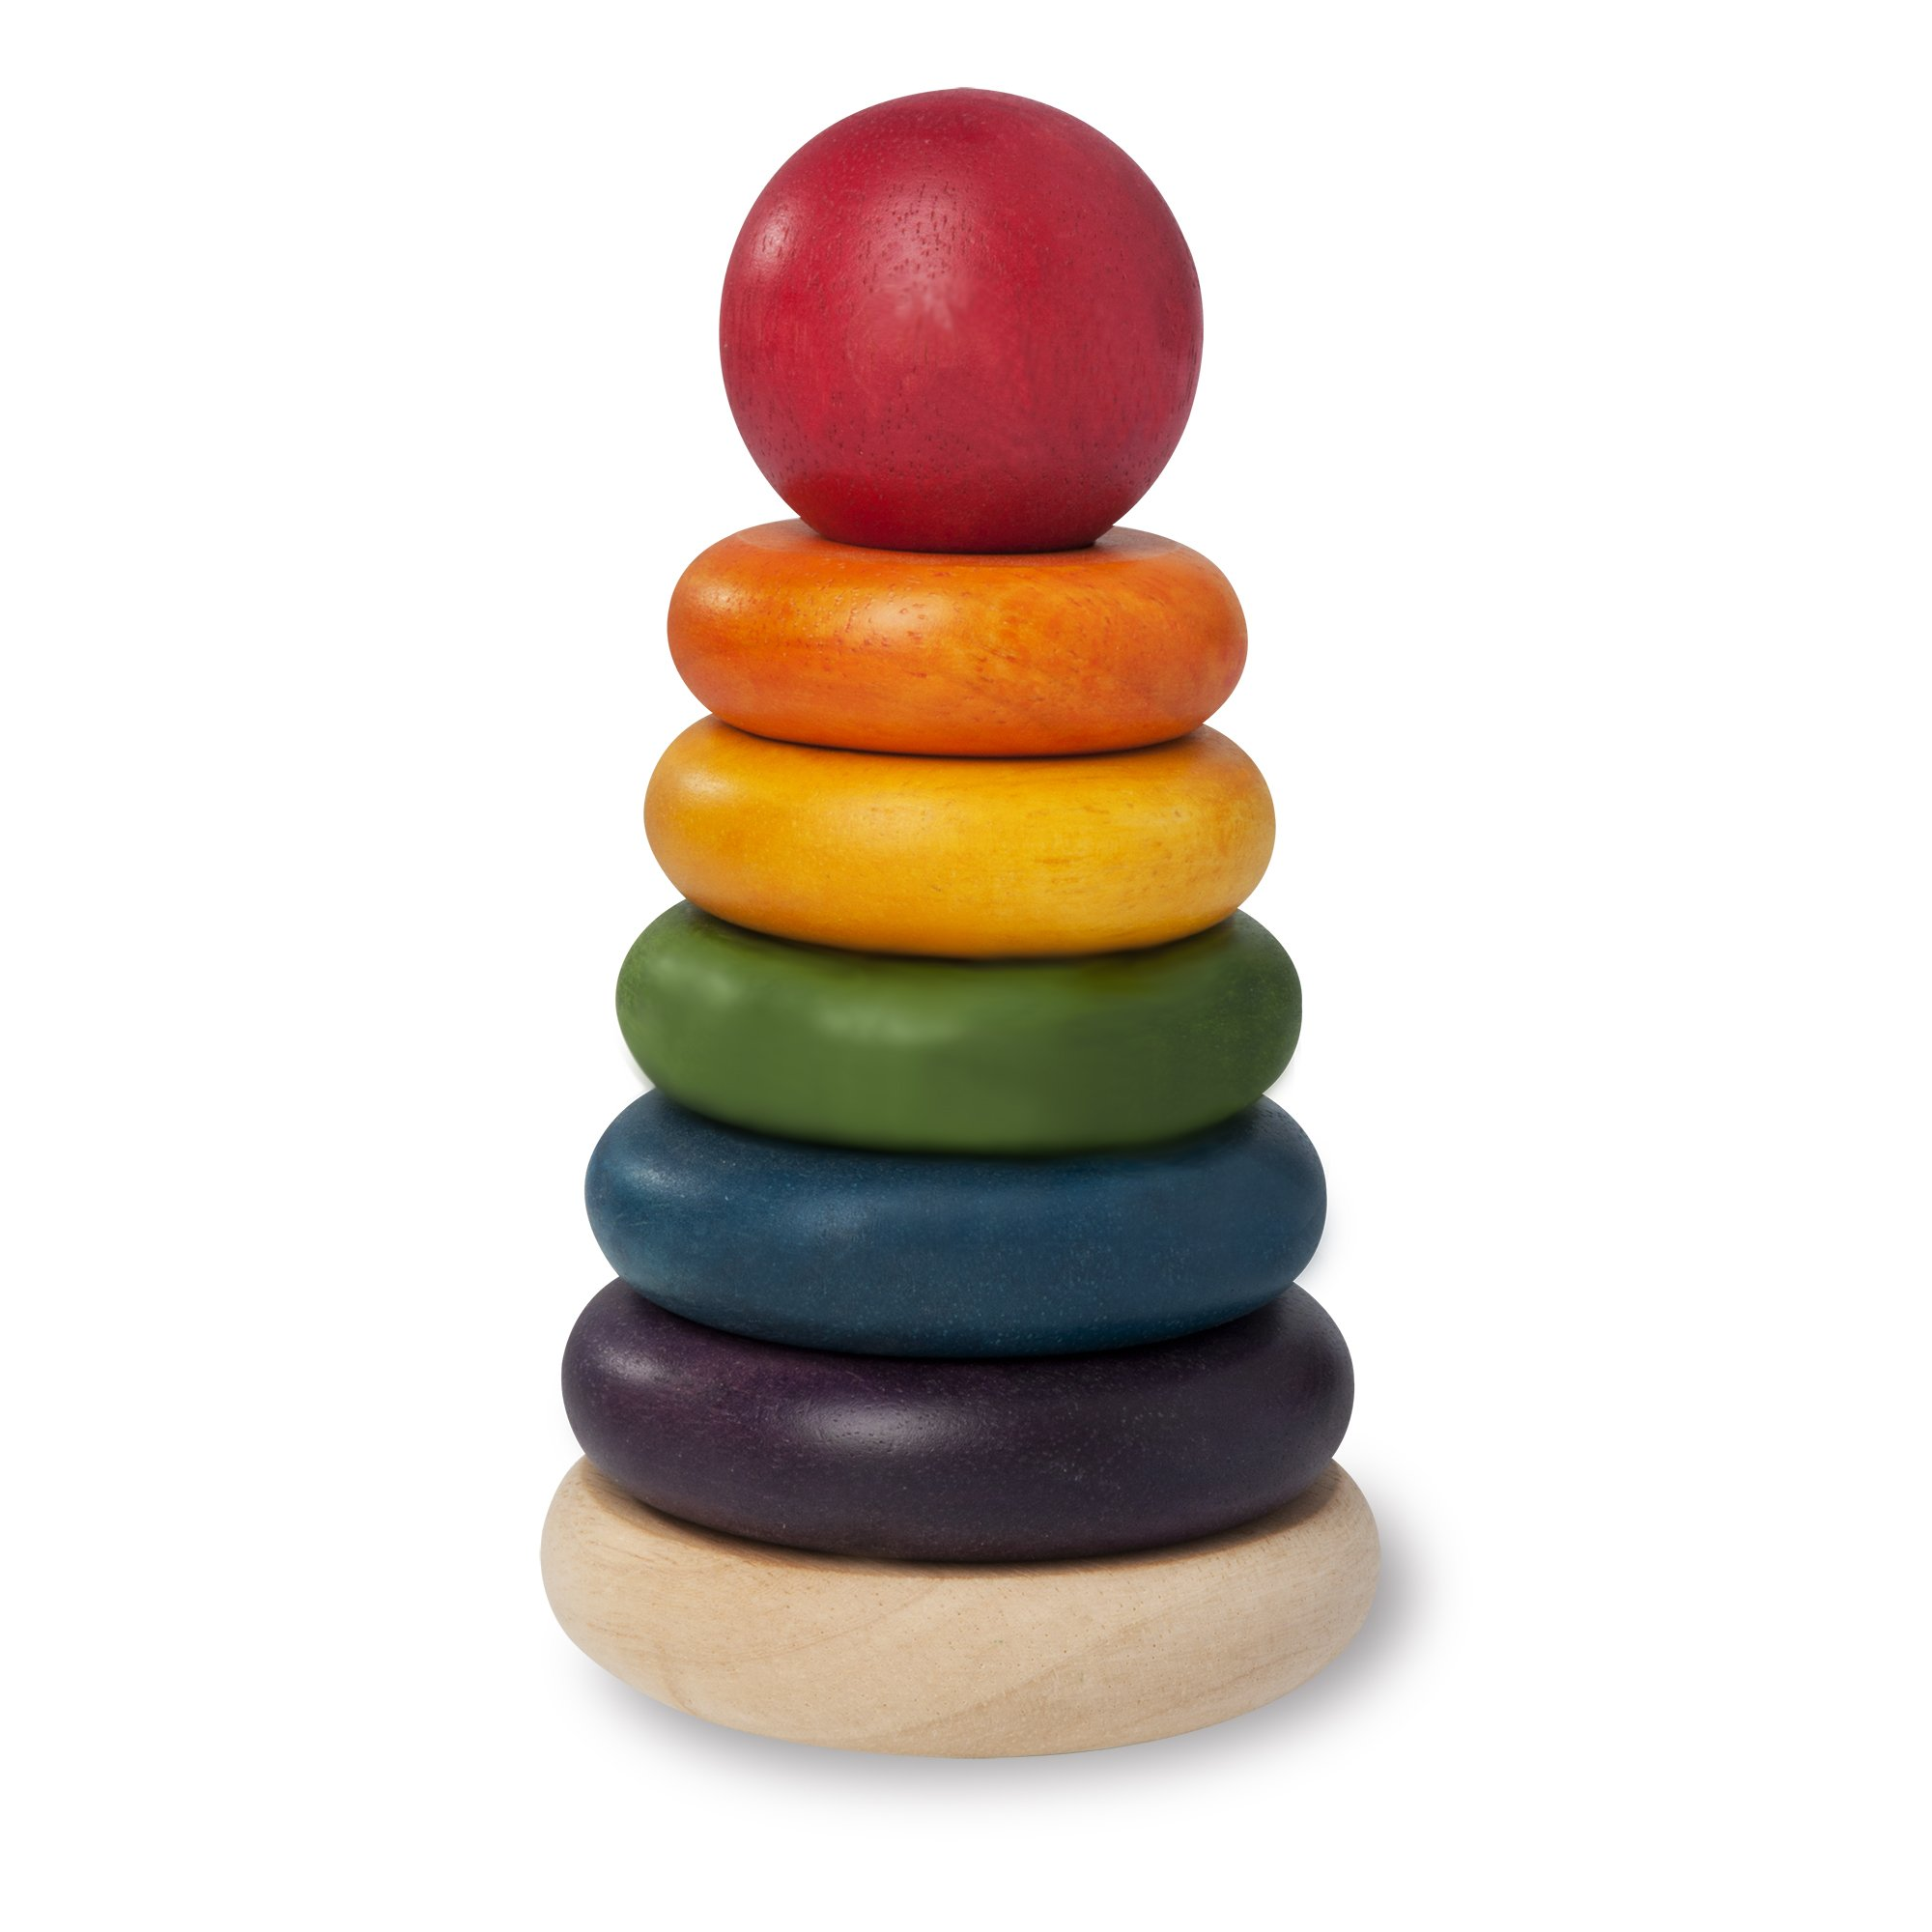 Wonderworld Natural Stacking Rings Baby Toy - Multi-Colored 6 Rings Non-Toxic For Safety